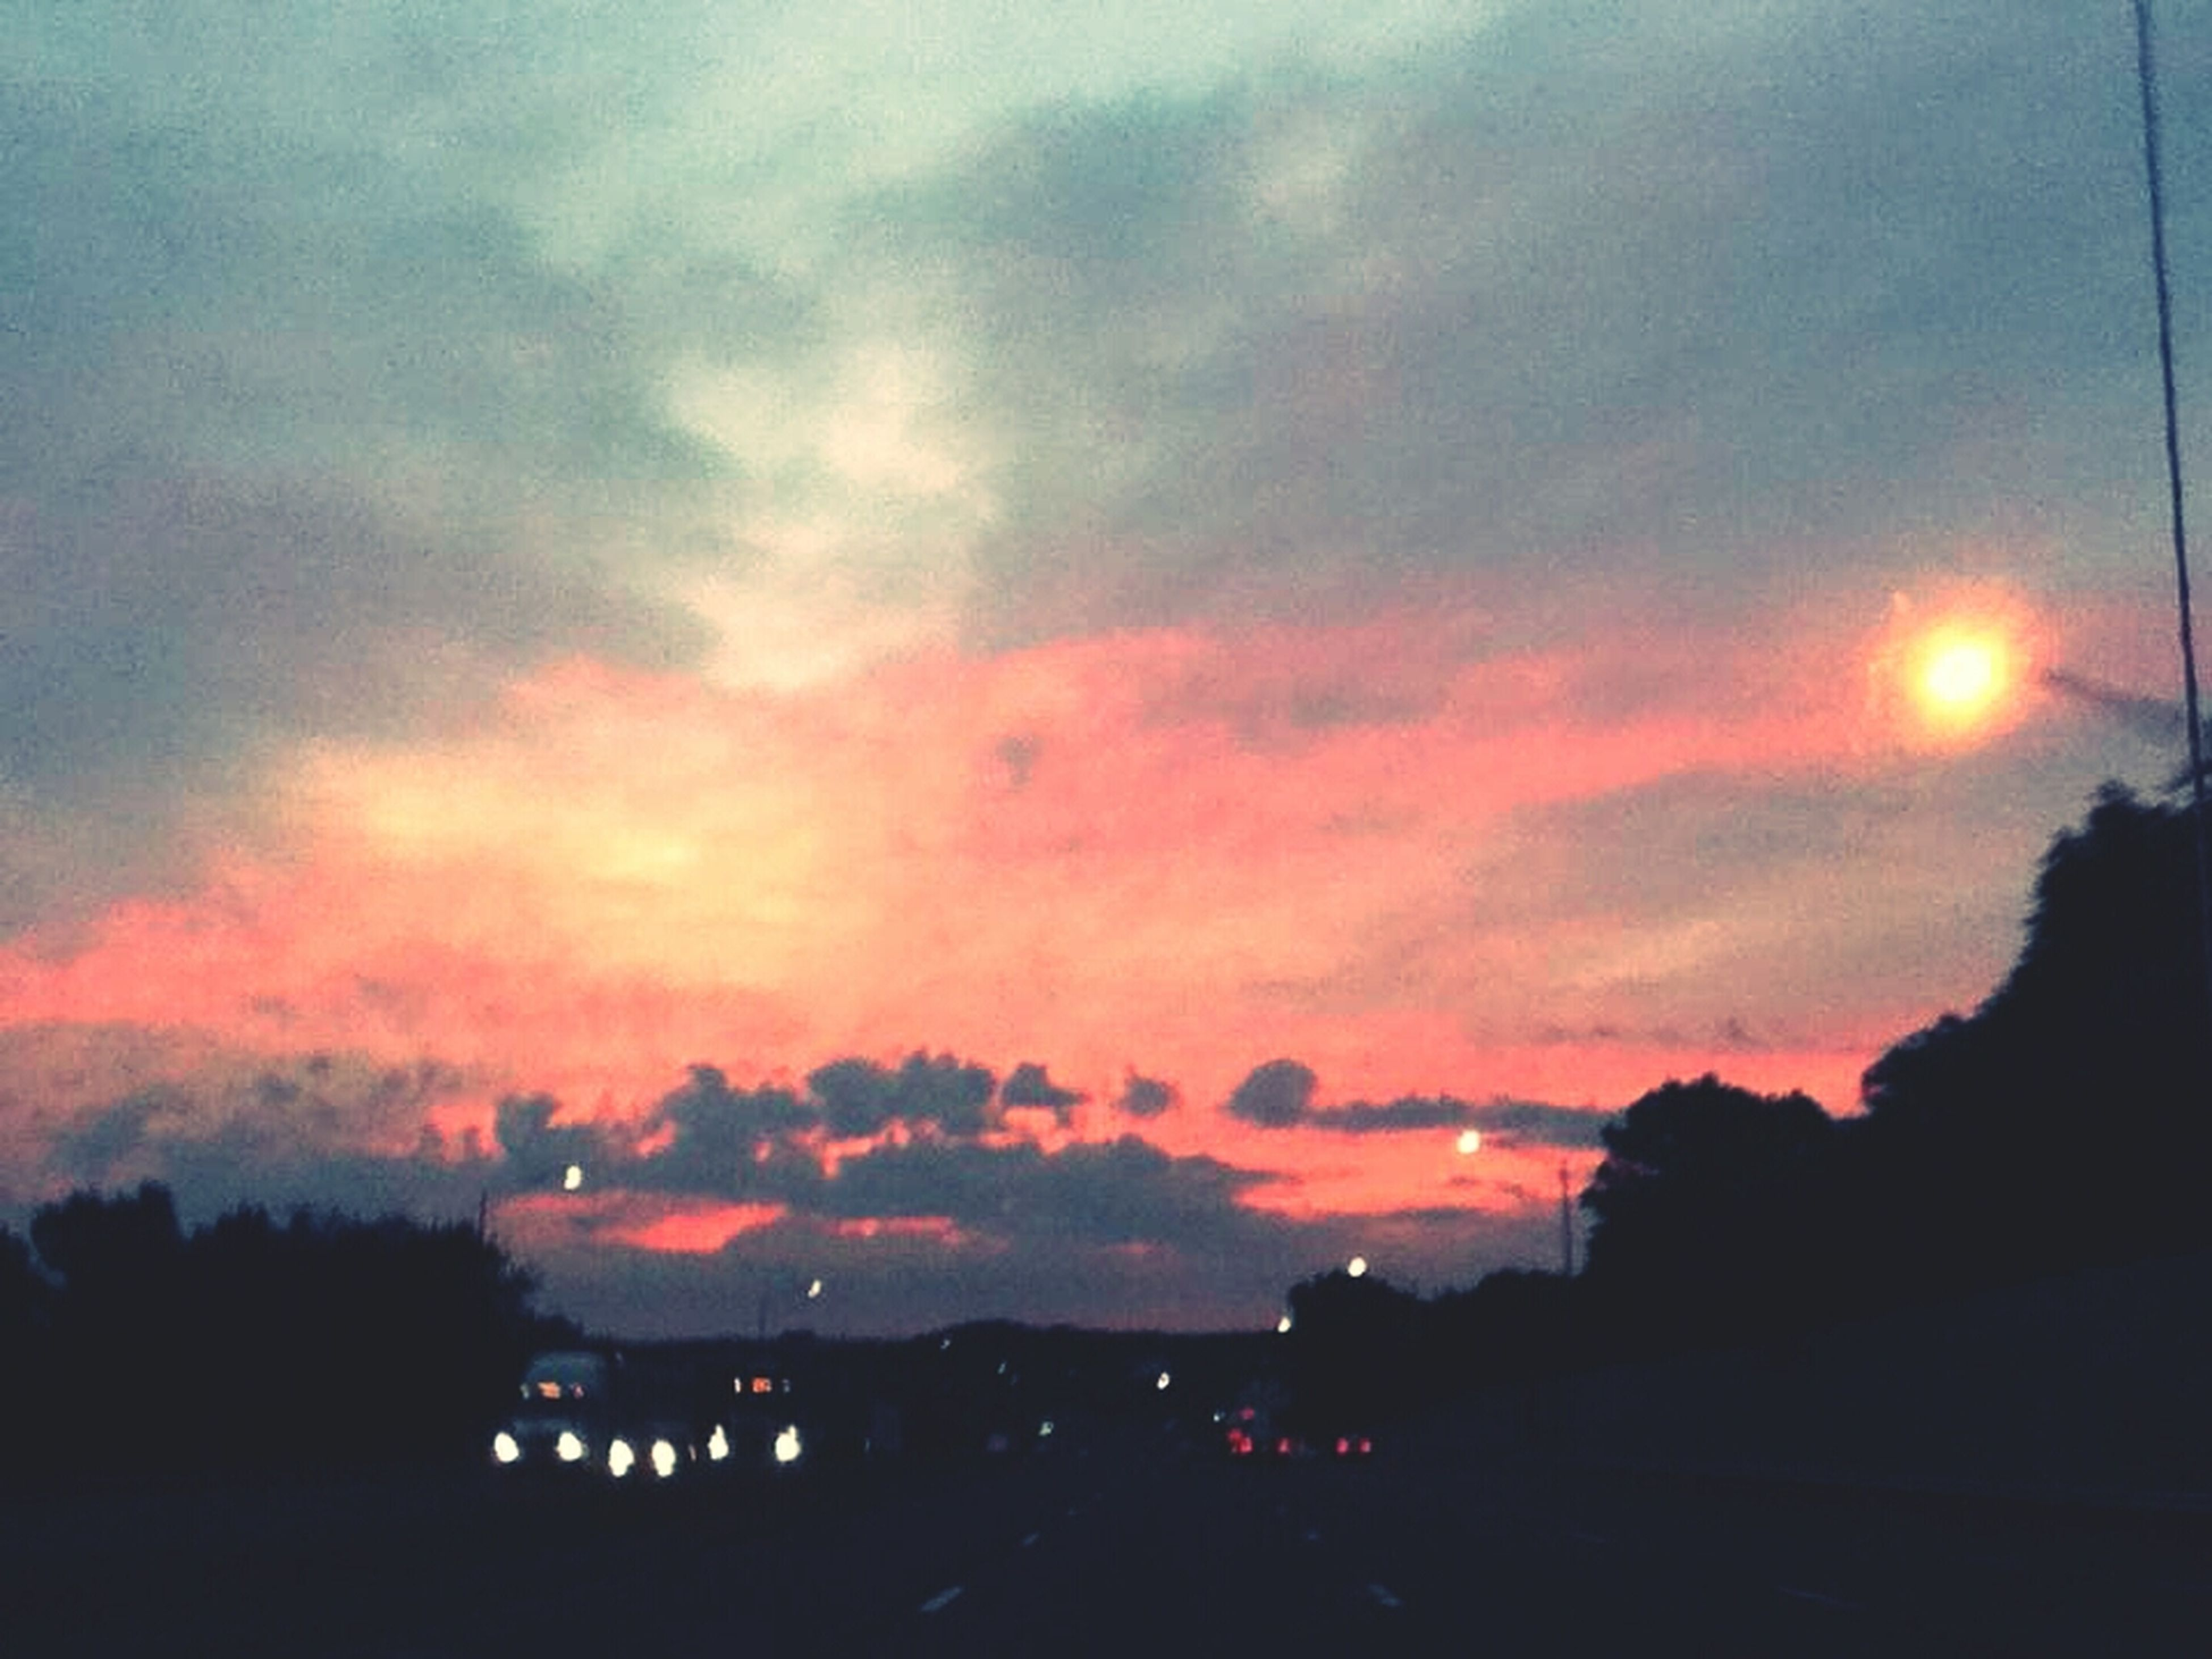 sunset, sky, silhouette, cloud - sky, beauty in nature, scenics, orange color, dramatic sky, nature, tranquil scene, tranquility, cloudy, cloud, dusk, building exterior, idyllic, weather, tree, moody sky, dark